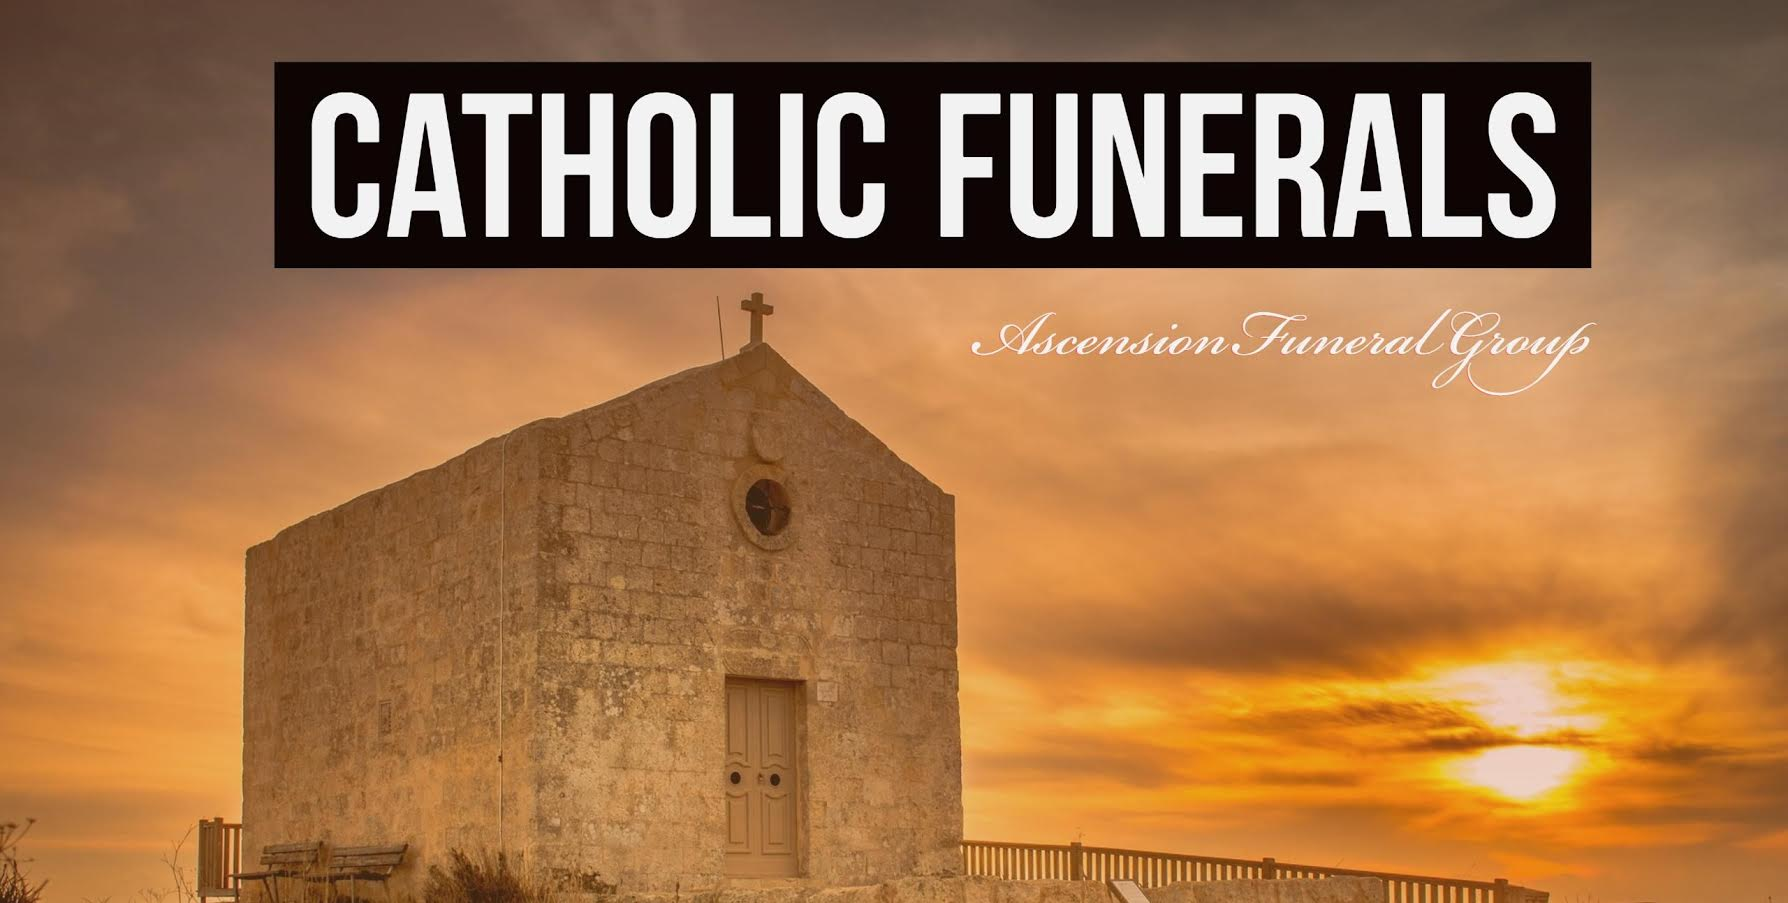 catholic funerals in mobile and saraland al